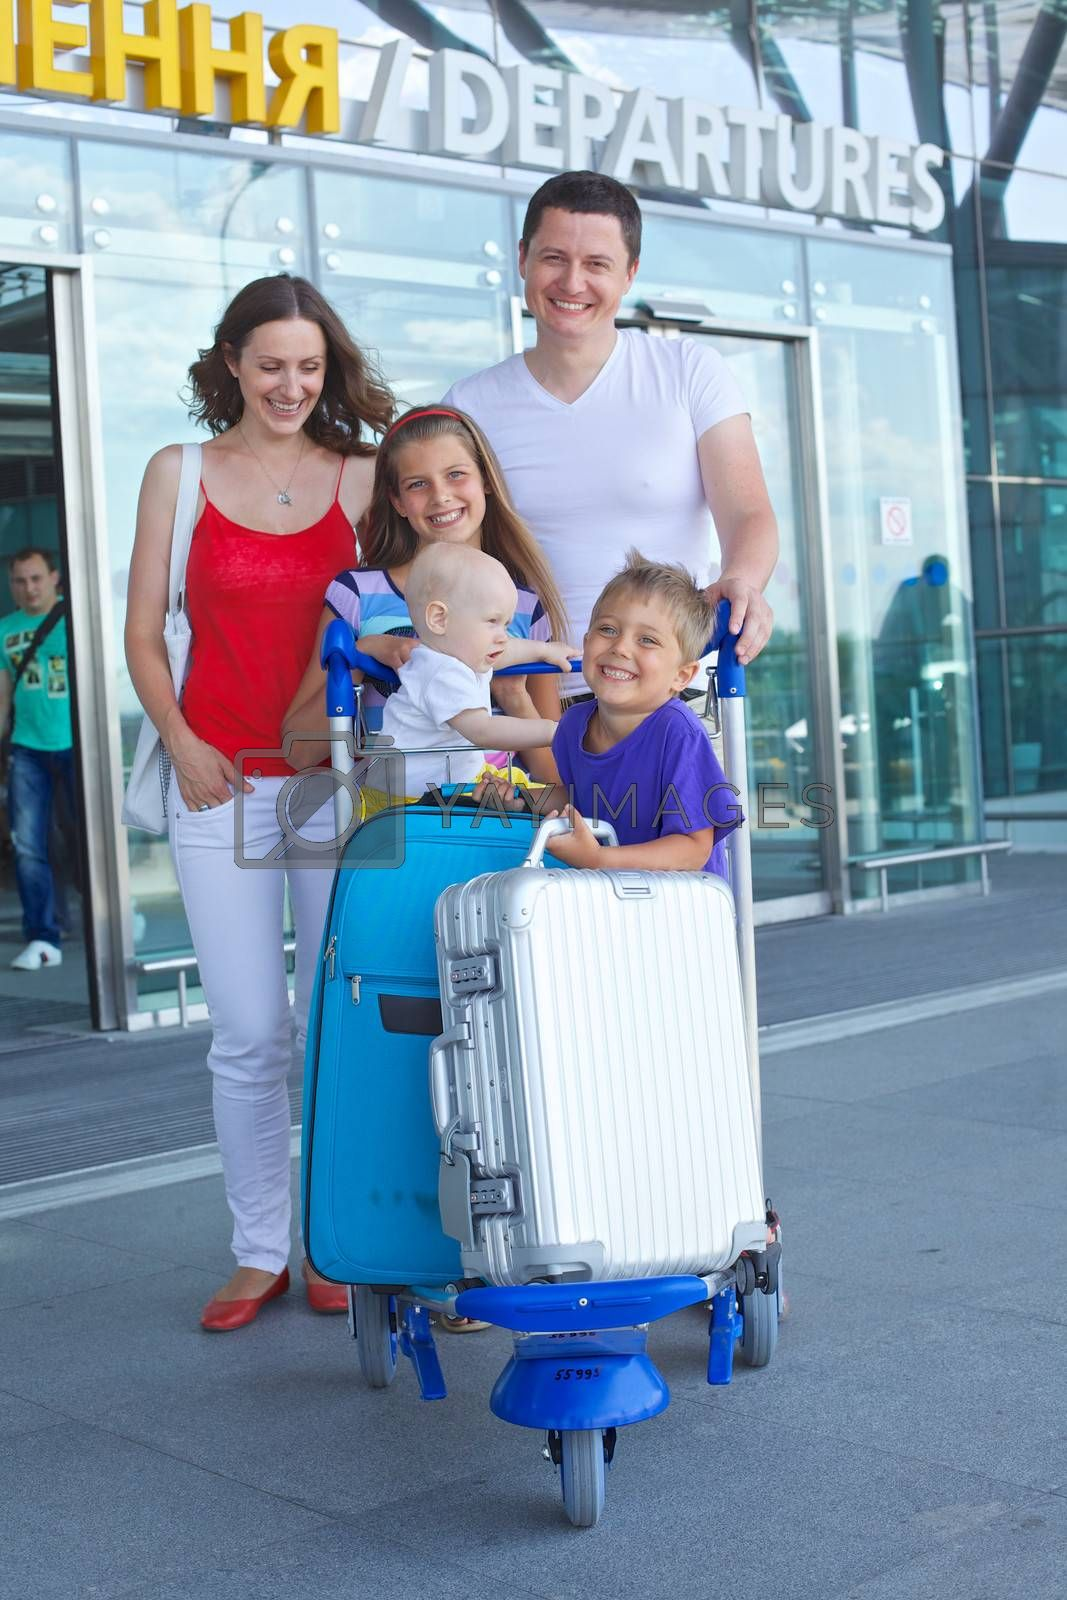 Standing traveling family of five with suitcases in airport